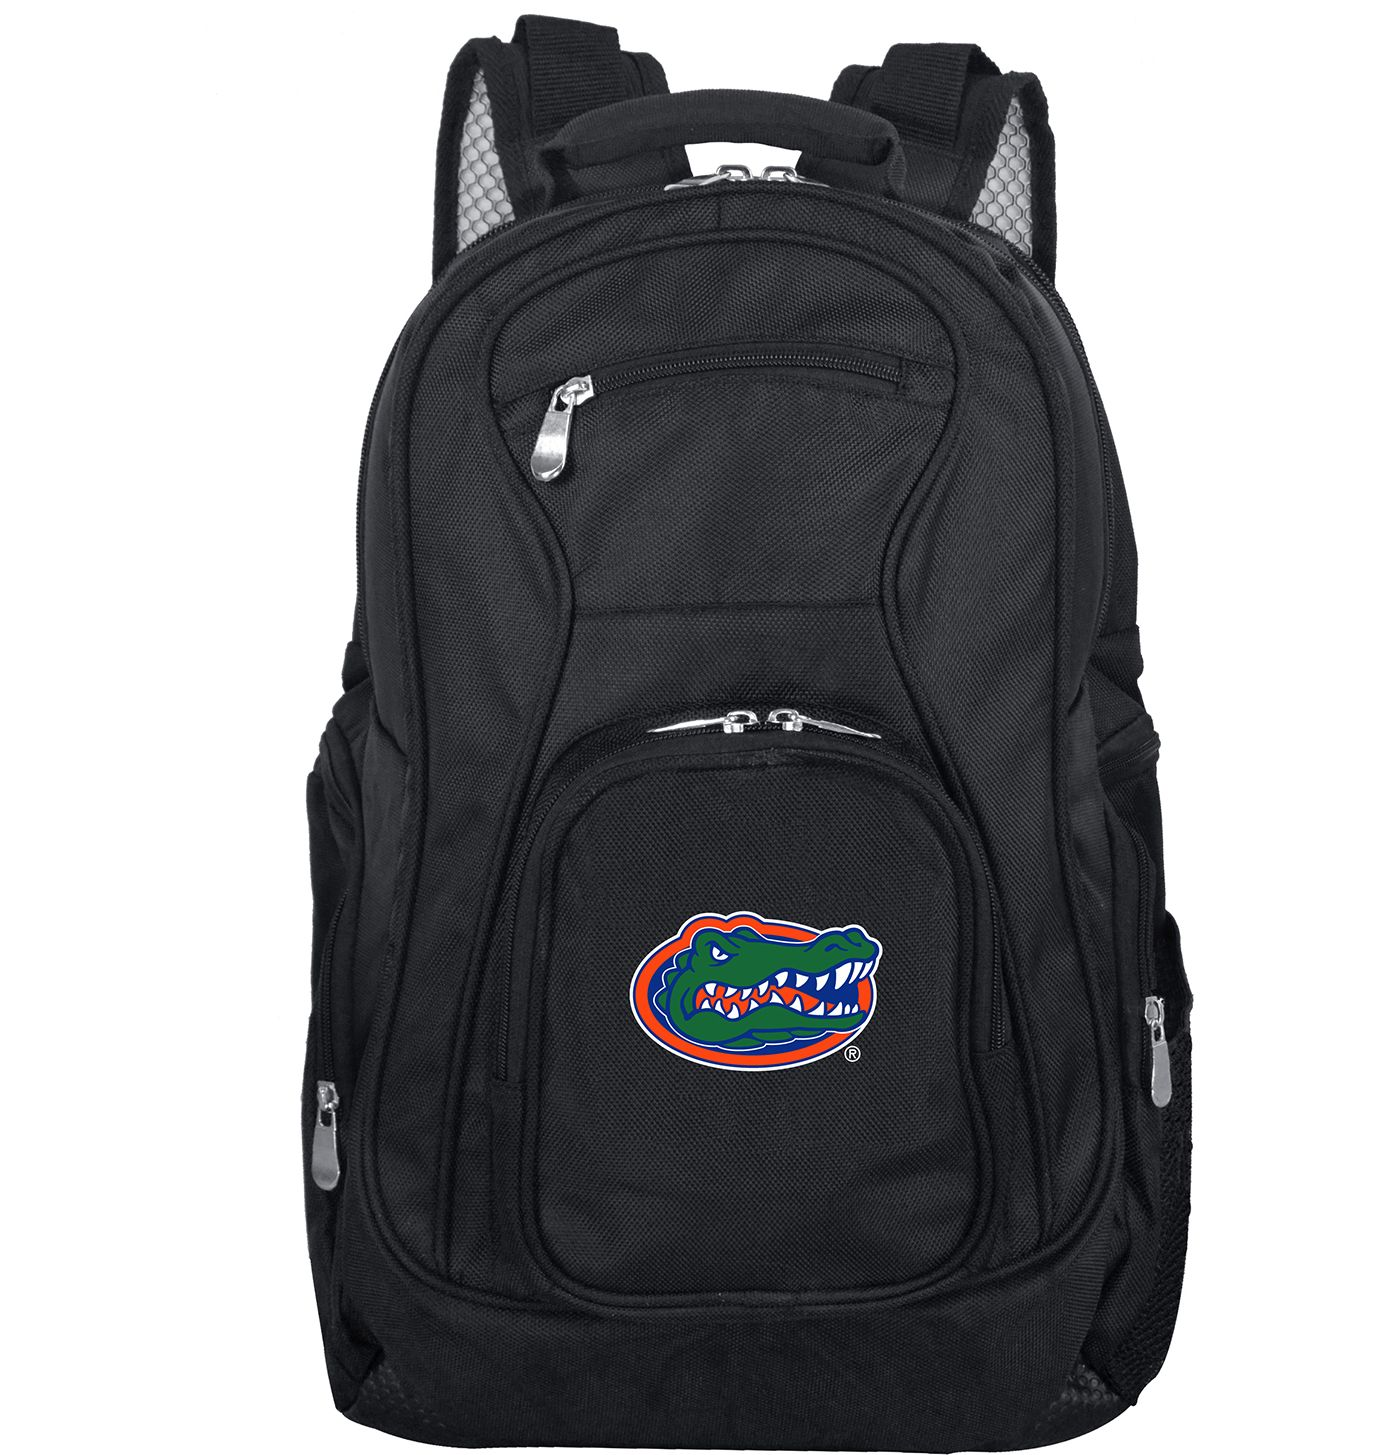 Mojo Florida Gators Laptop Backpack